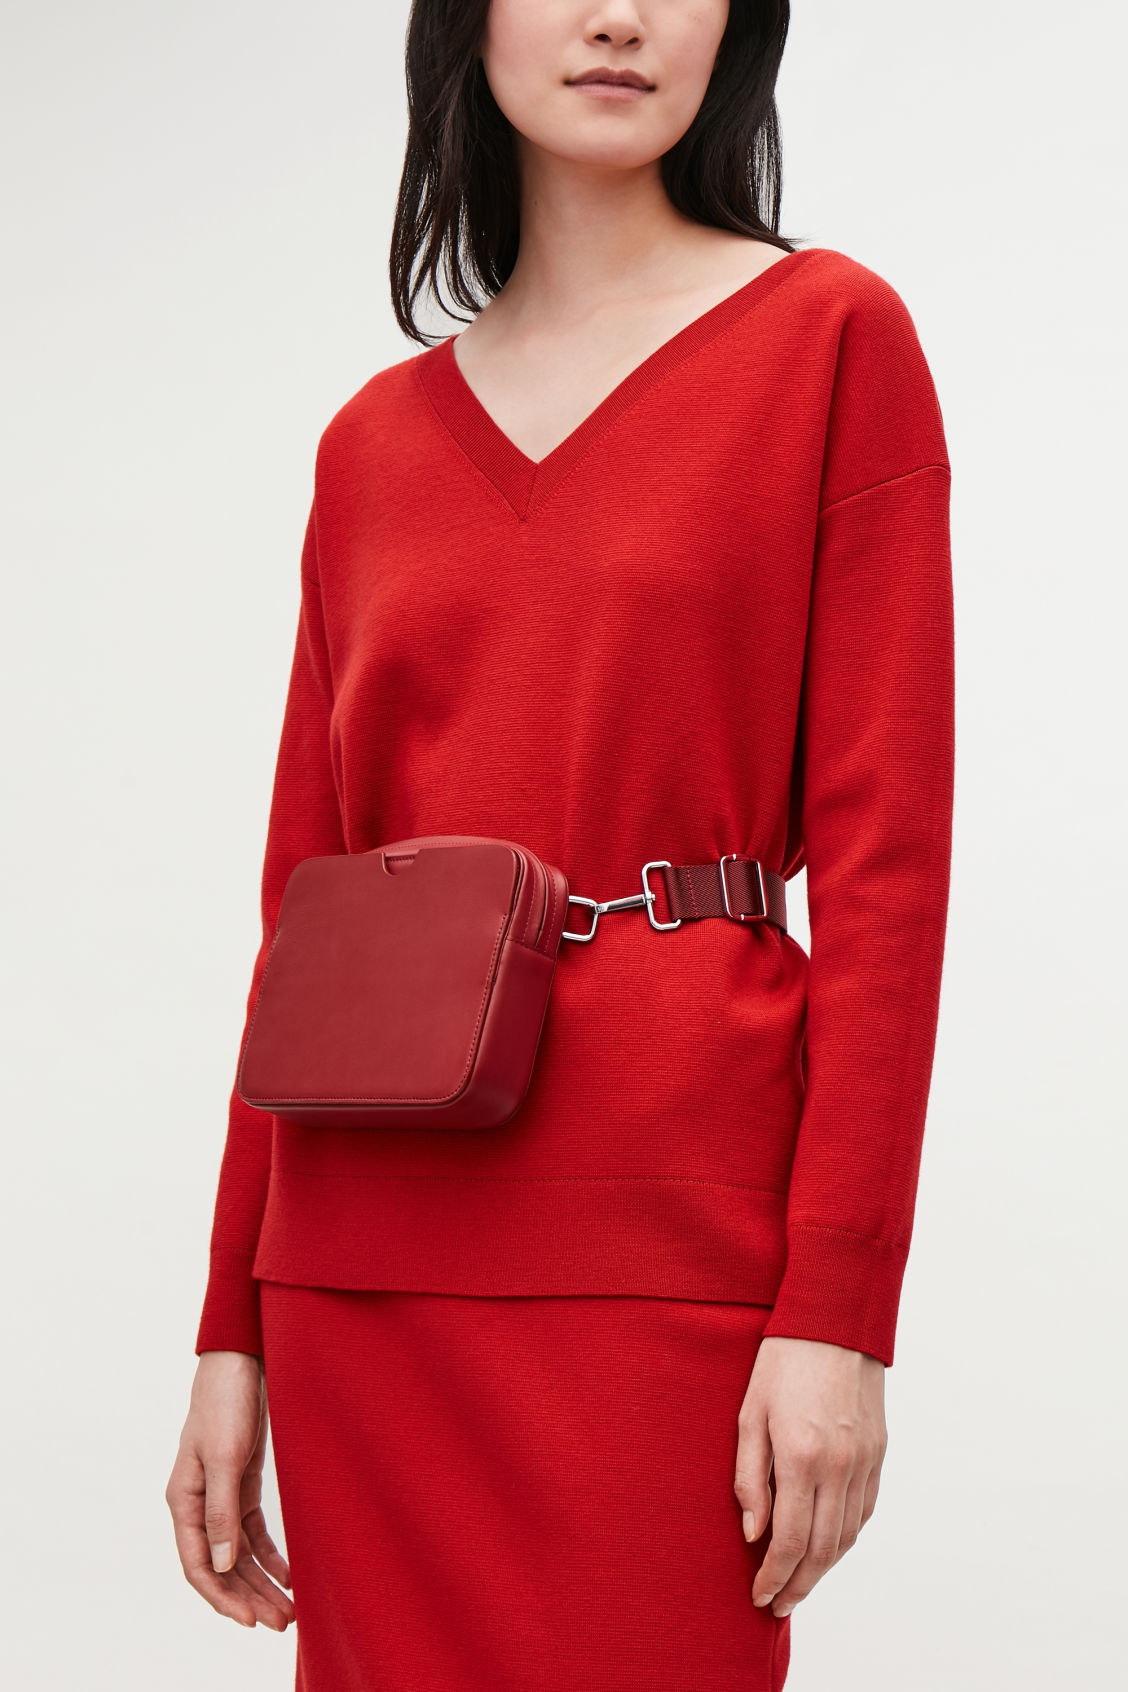 Detailed image of Cos multifunctional leather bag  in red